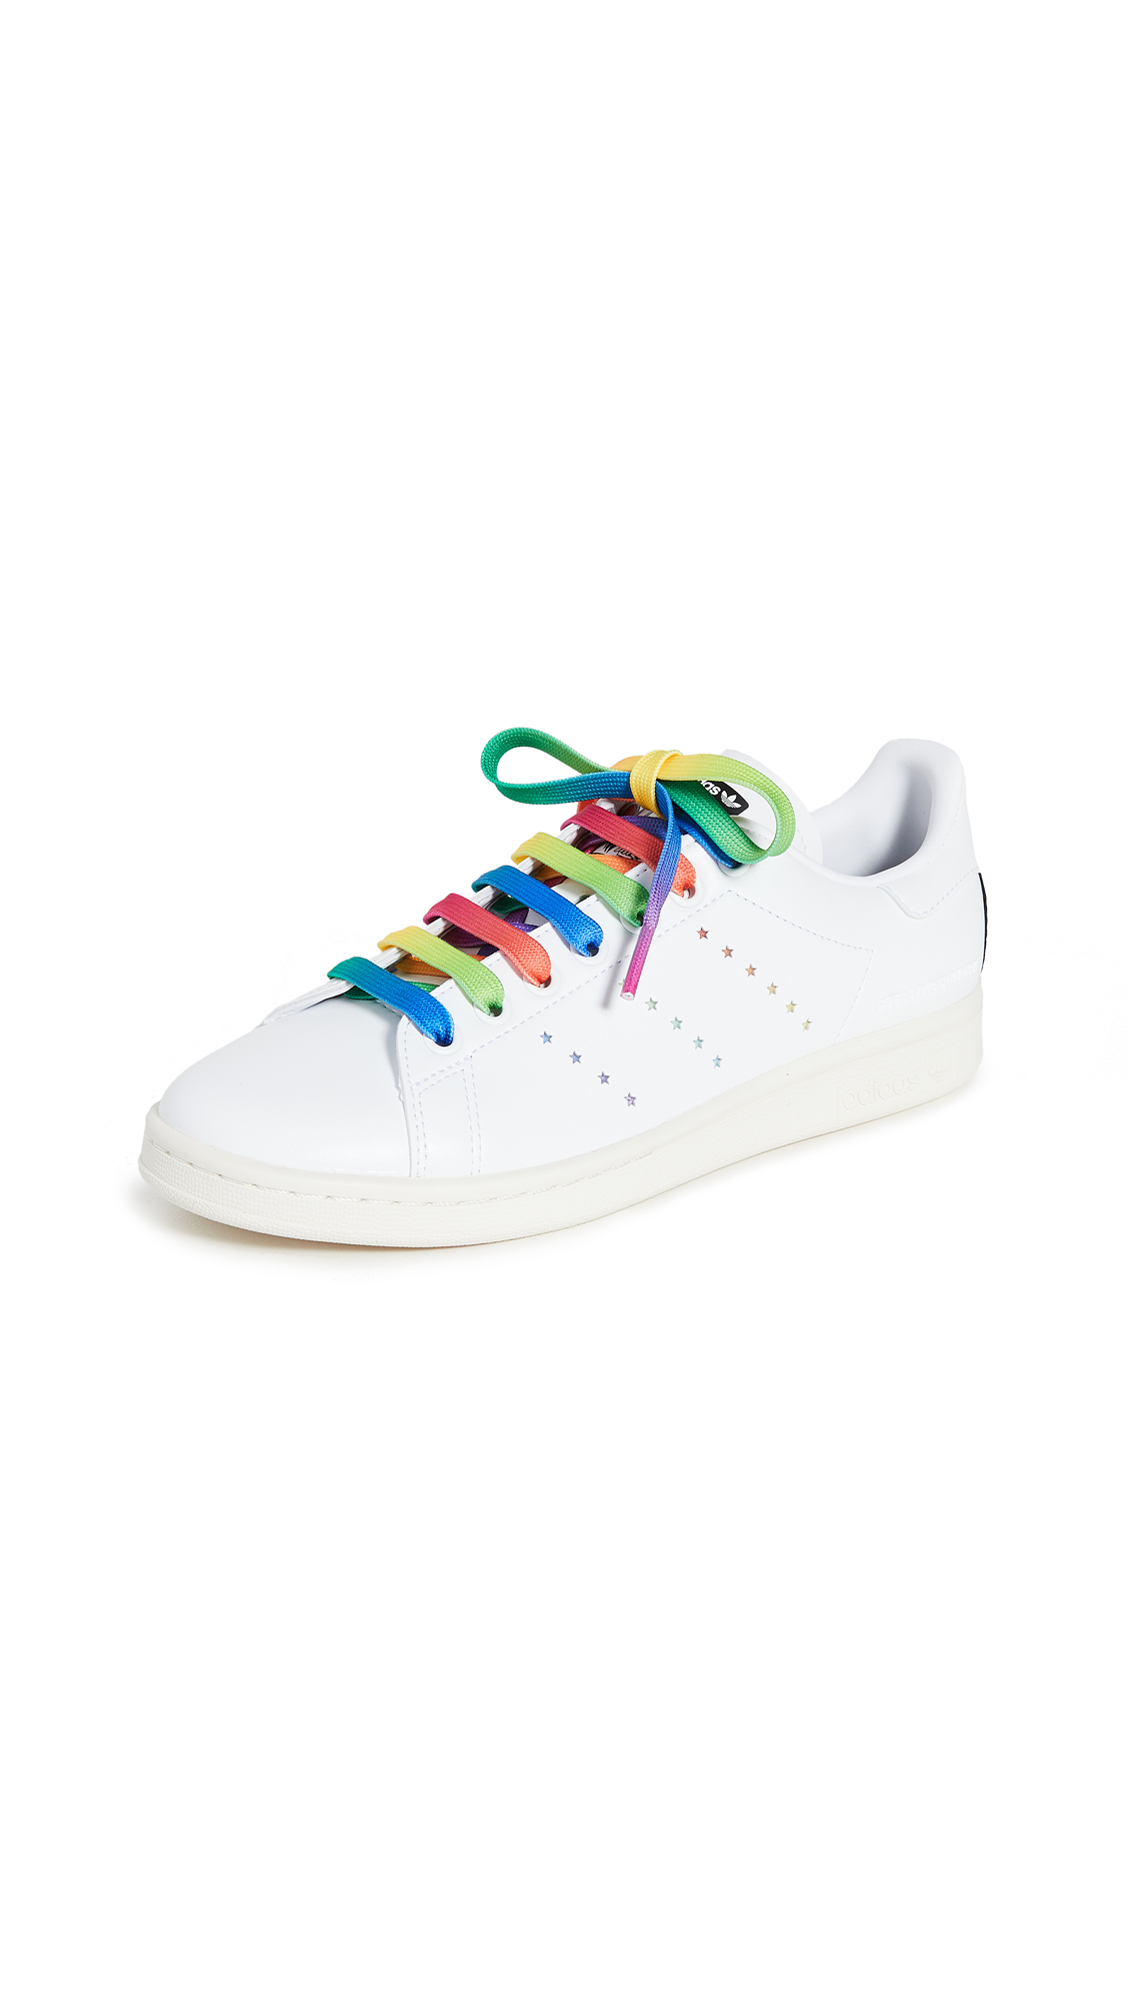 Stella McCartney Stan Smith Sneakers – 40% Off Sale